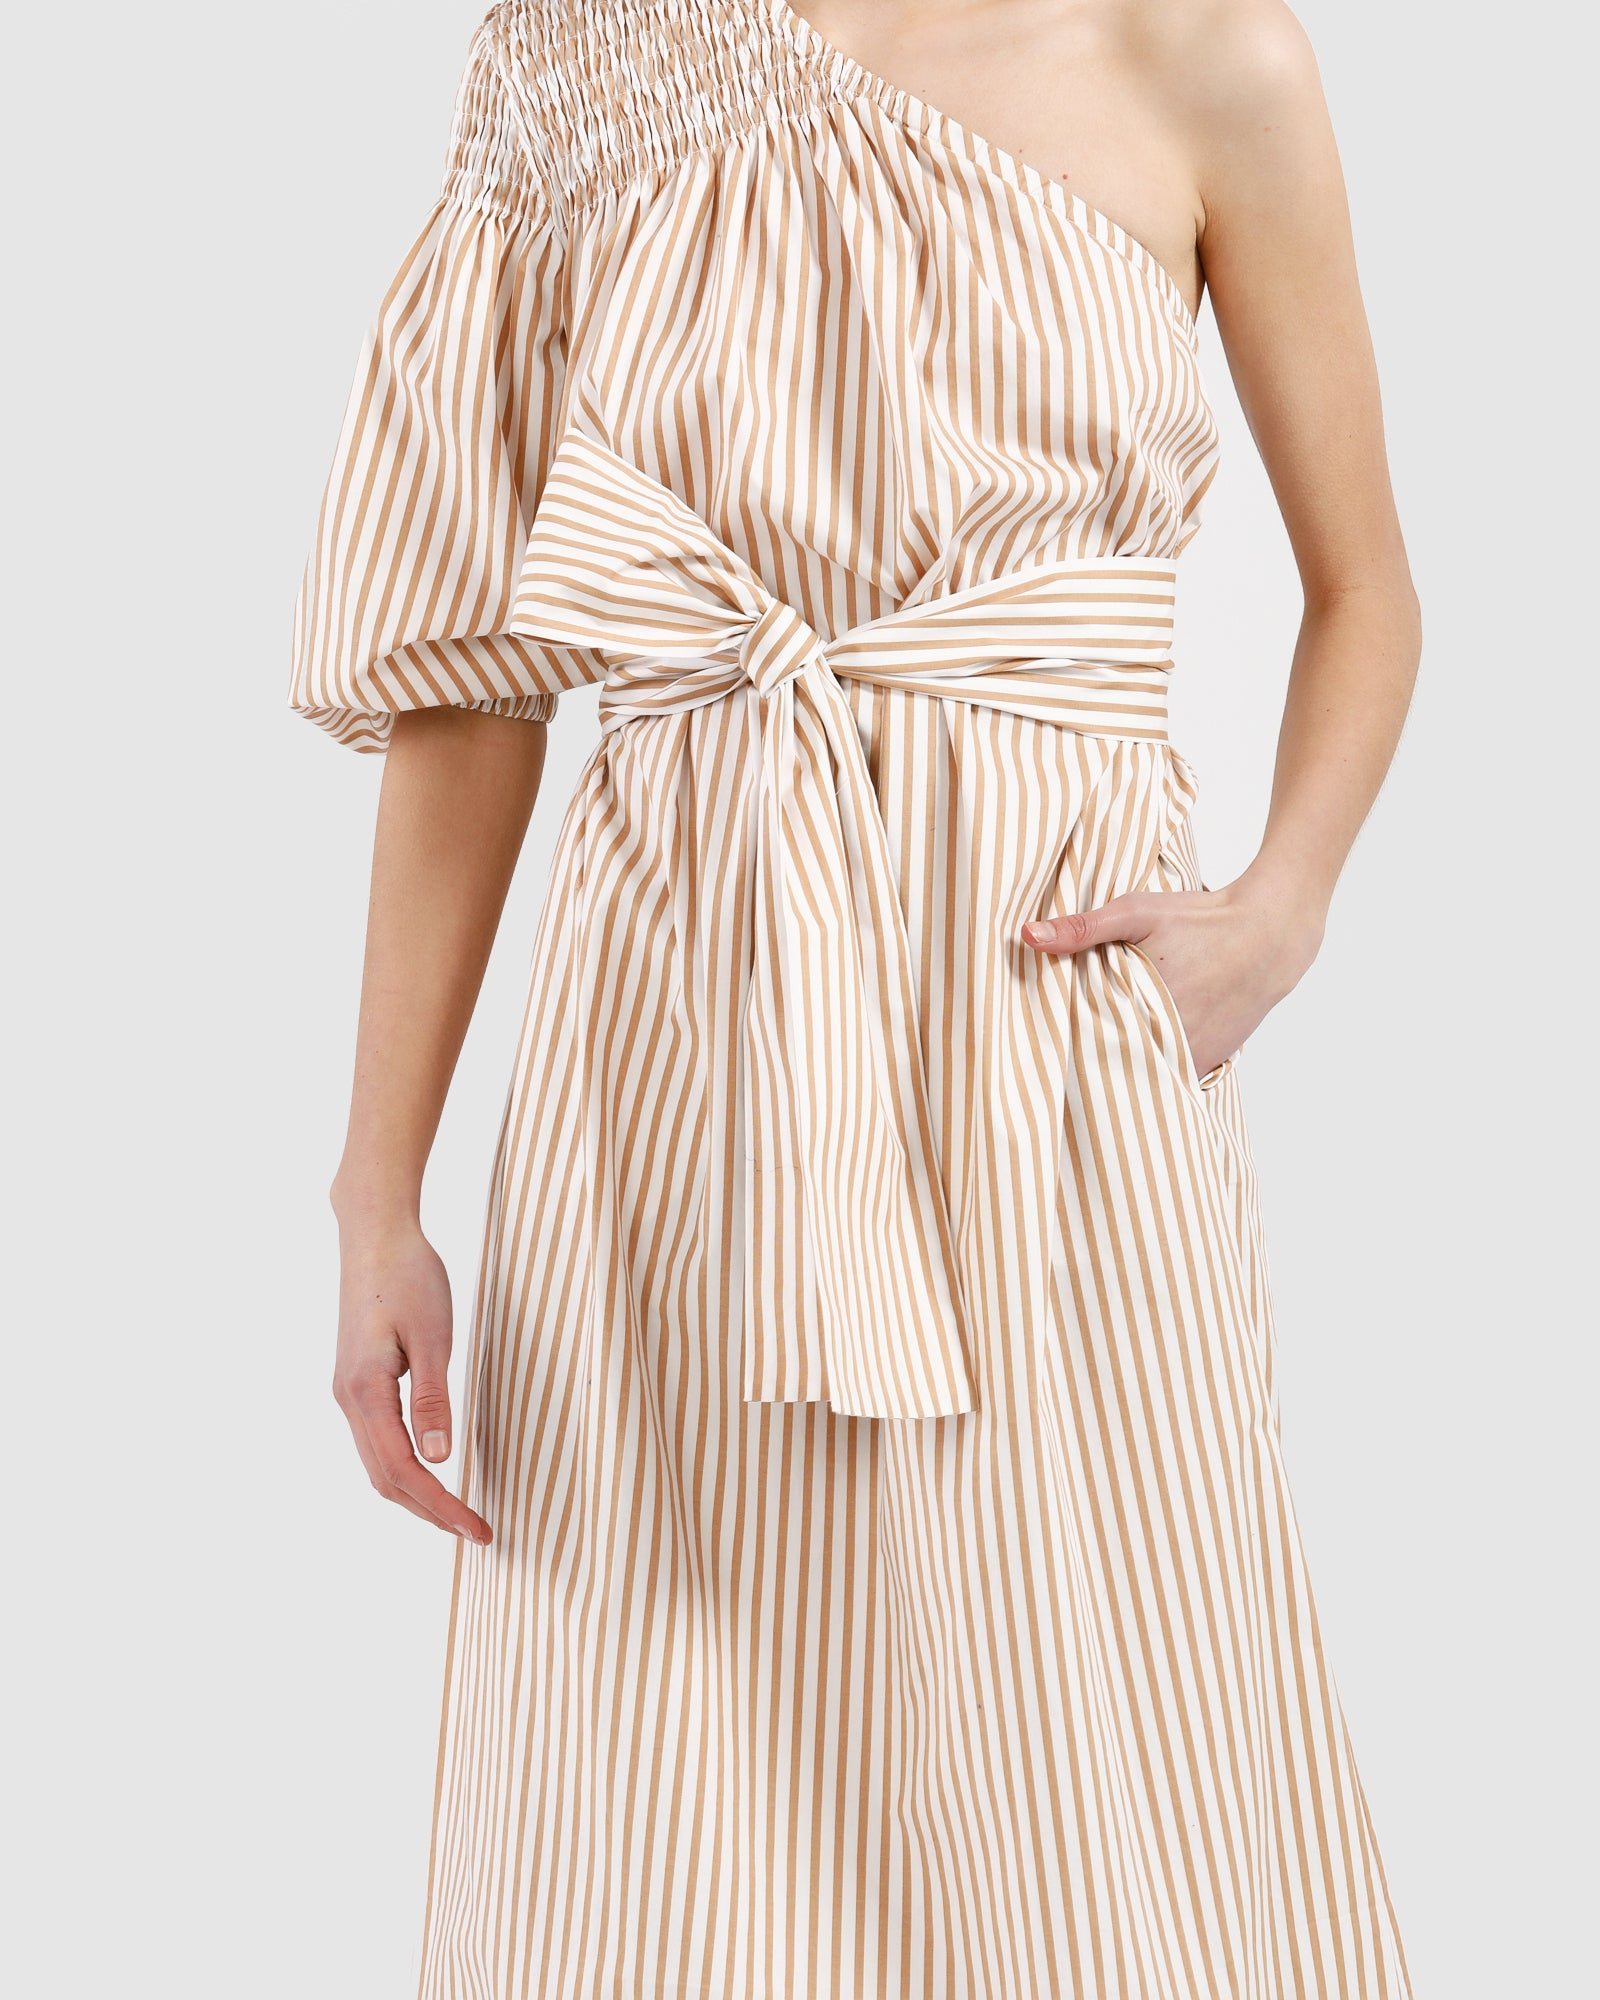 Louise Dress / Canary stripe